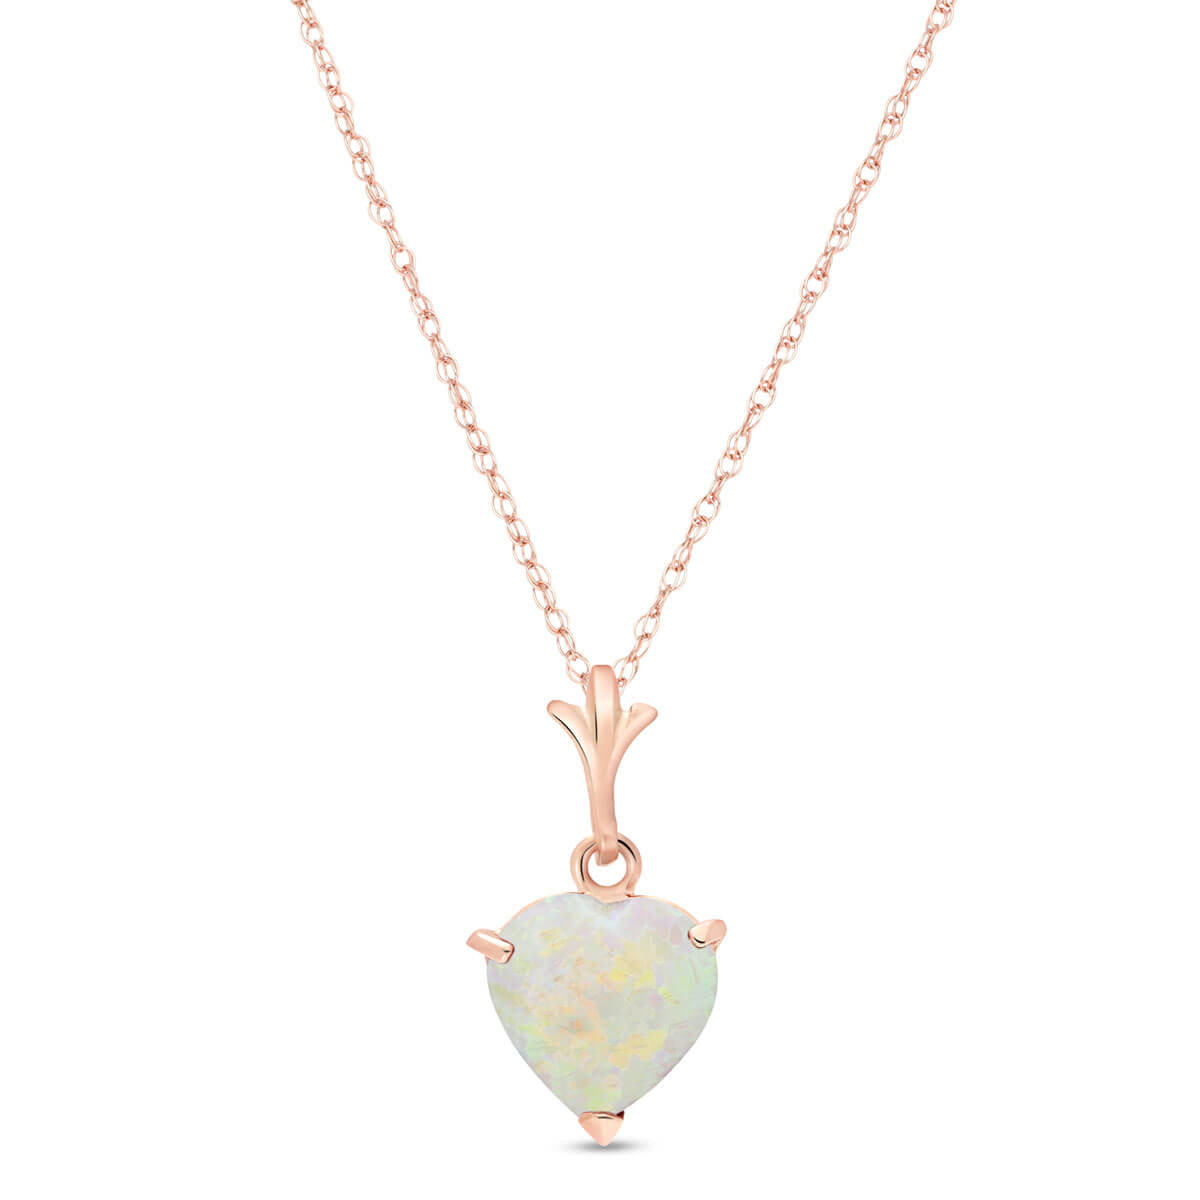 Opal Heart Pendant Necklace 0.65 ct in 9ct Rose Gold